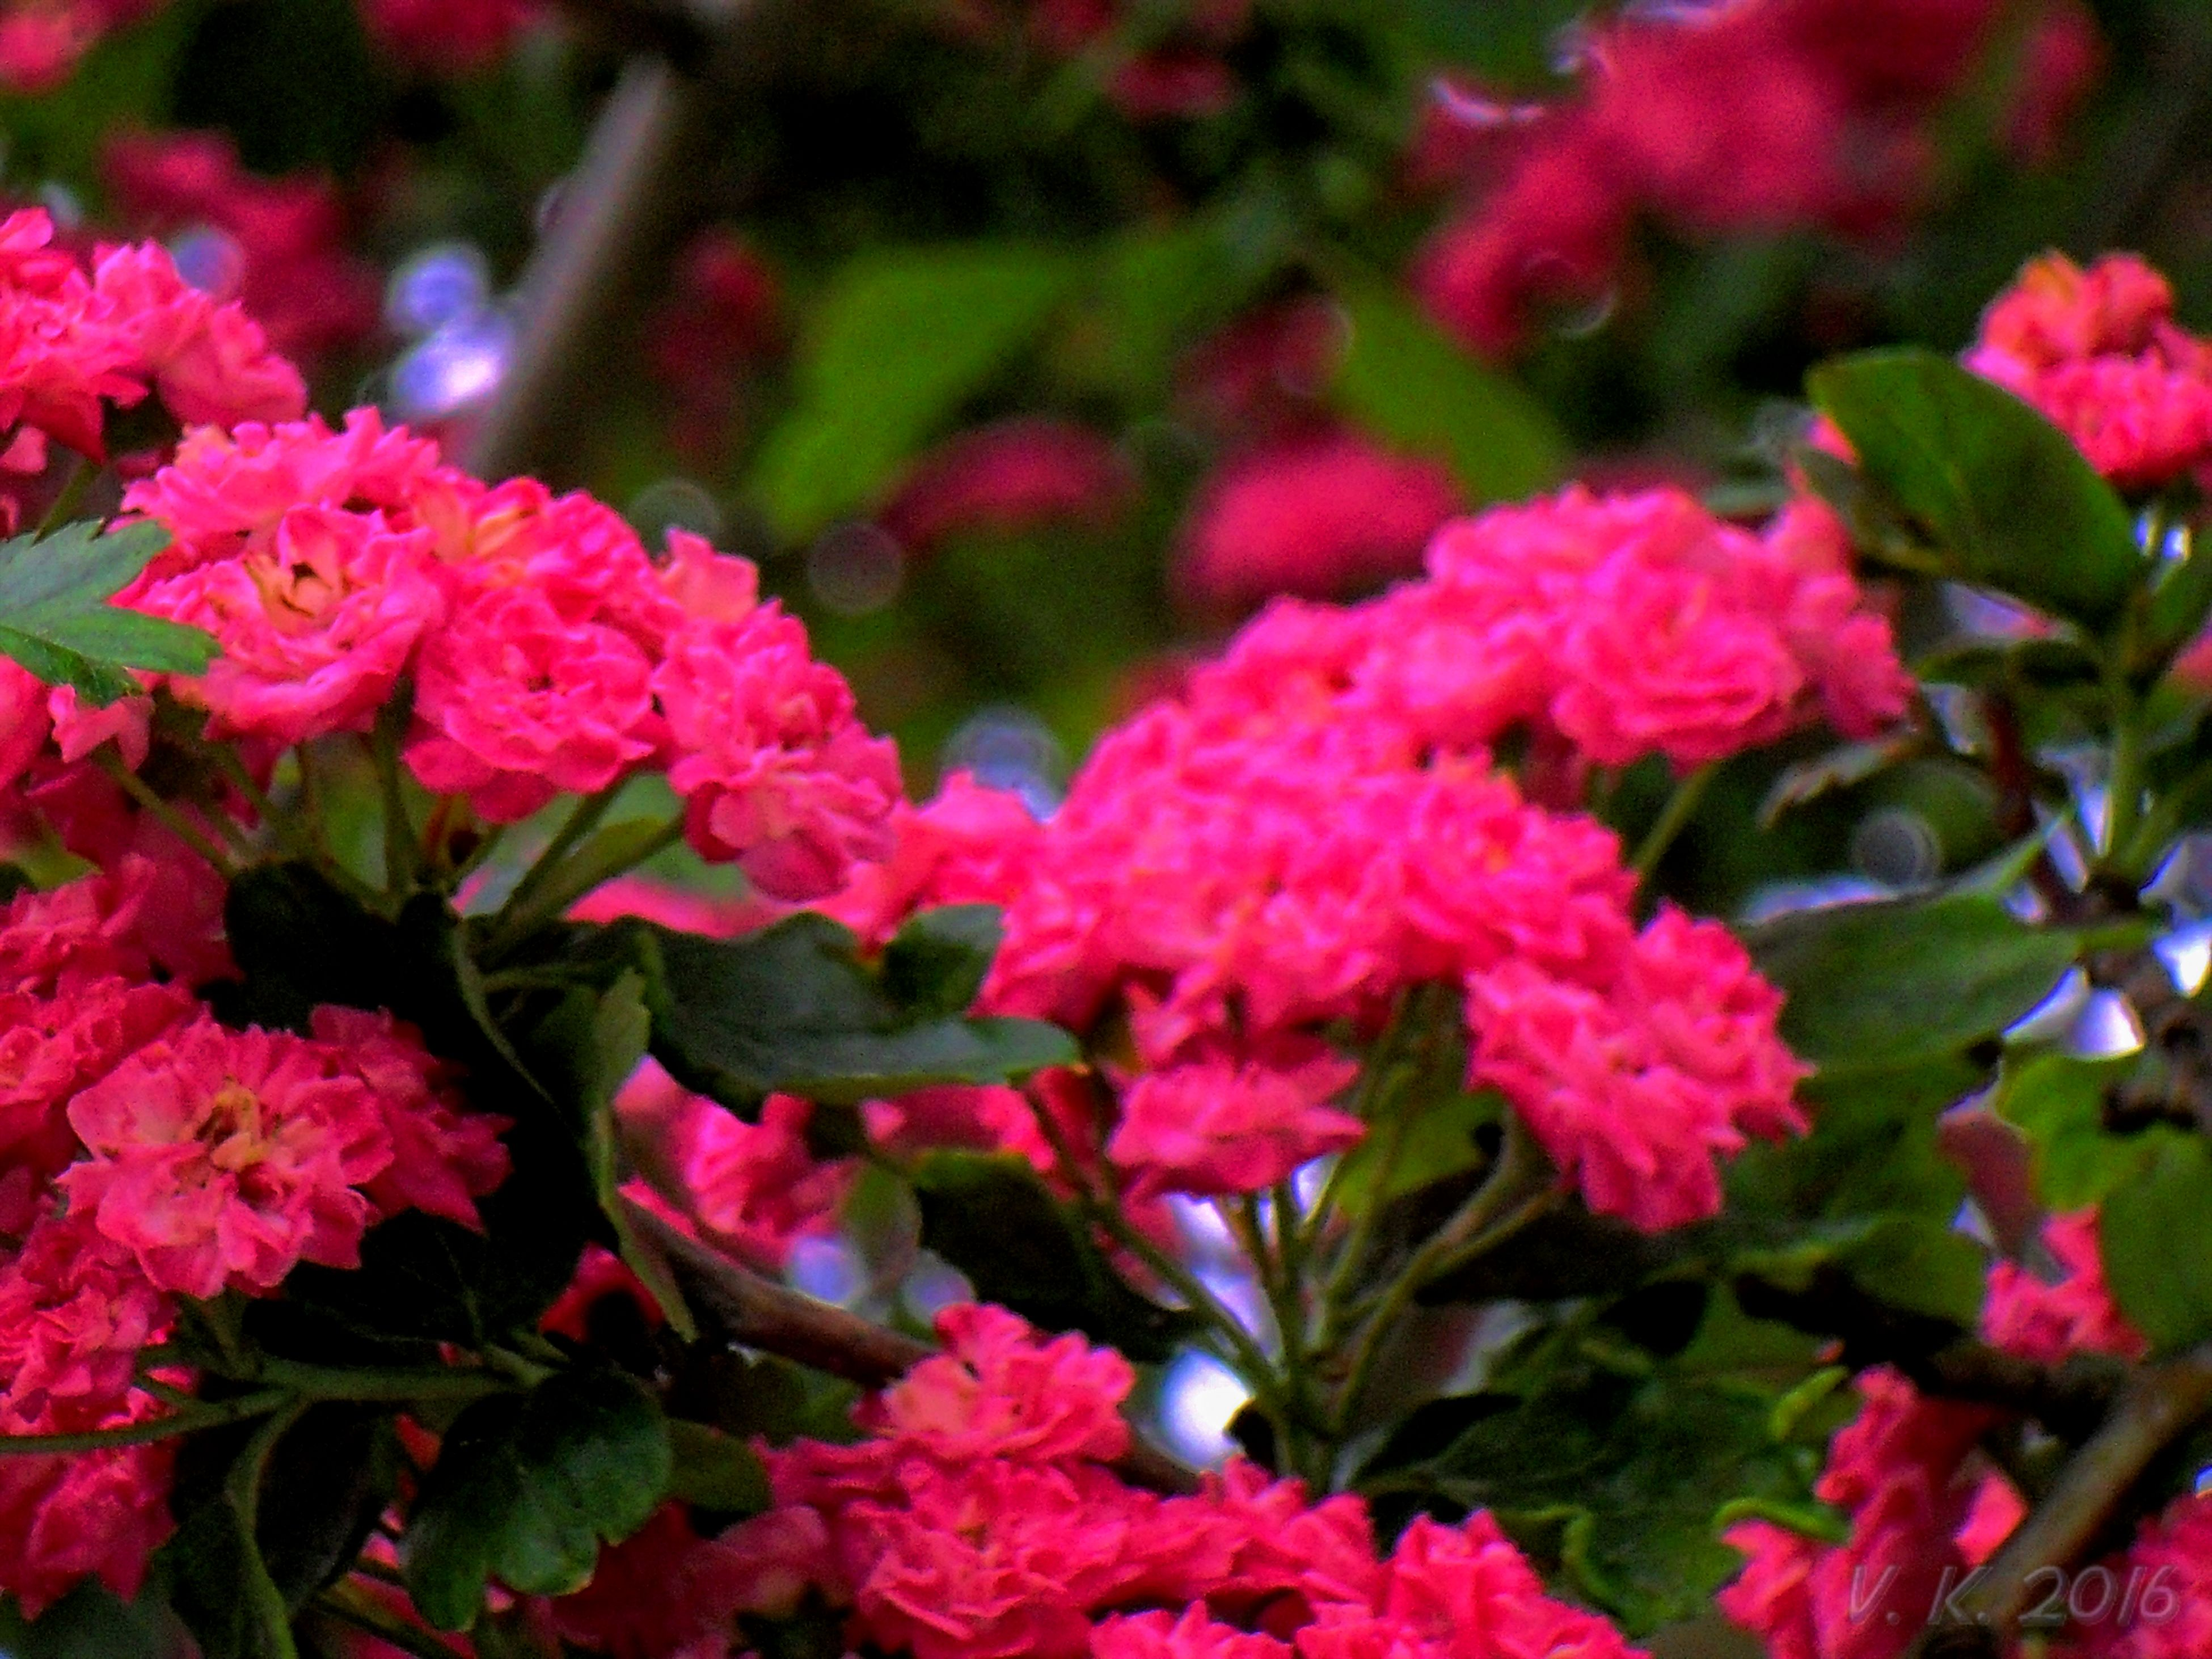 flower, freshness, fragility, growth, beauty in nature, petal, close-up, pink color, nature, springtime, plant, flower head, in bloom, selective focus, botany, bunch of flowers, blossom, day, focus on foreground, vibrant color, blooming, red, flowering plant, softness, garden, formal garden, no people, bloom